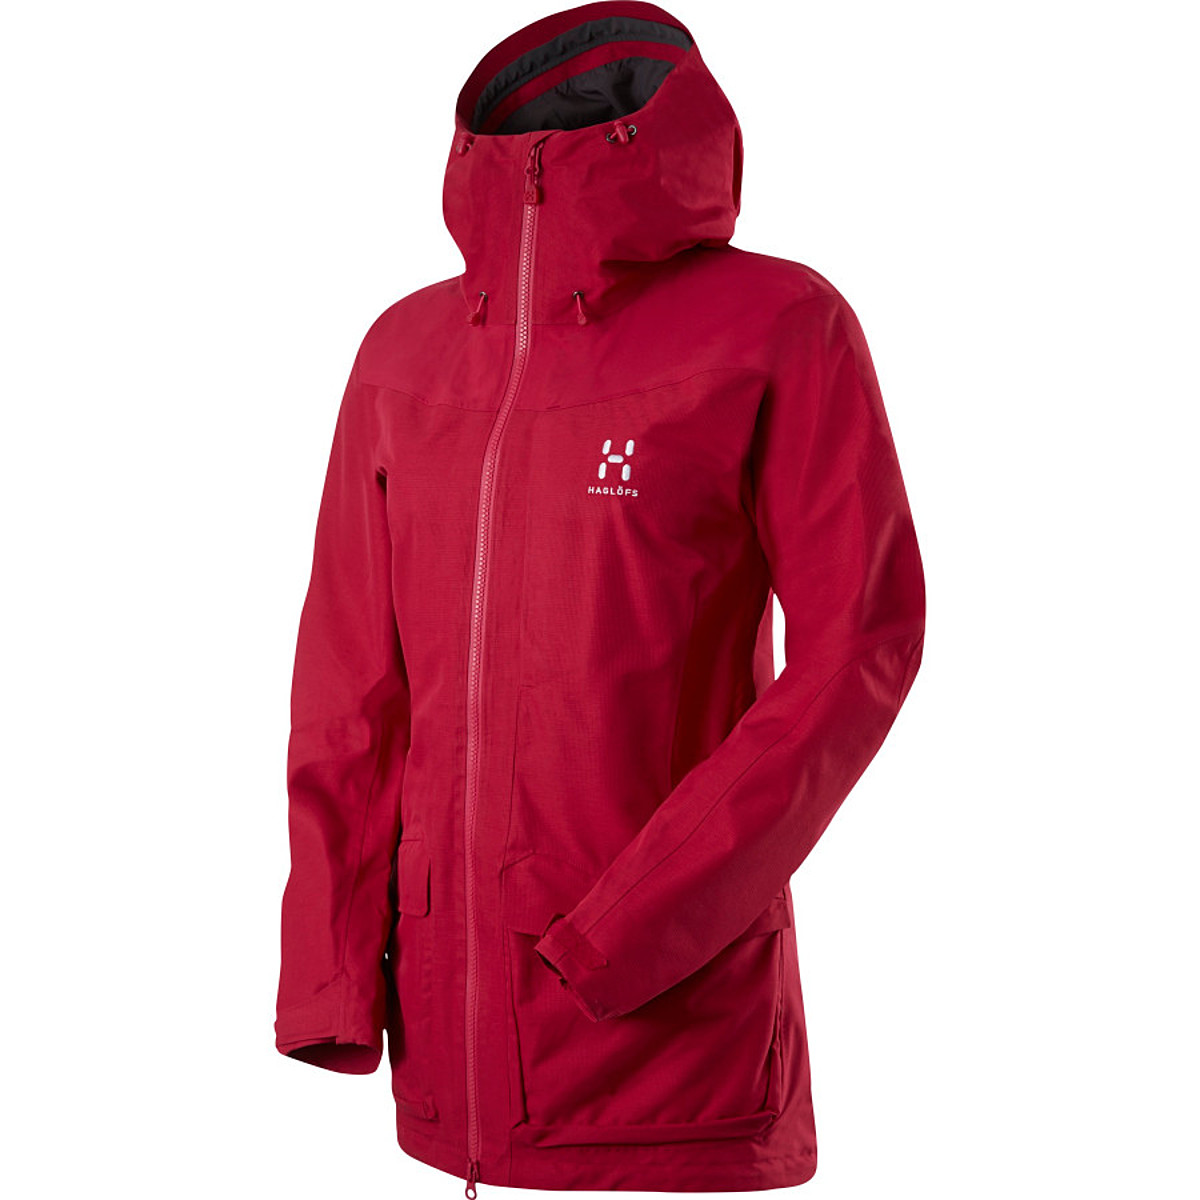 Haglofs Ridge Q Jacket